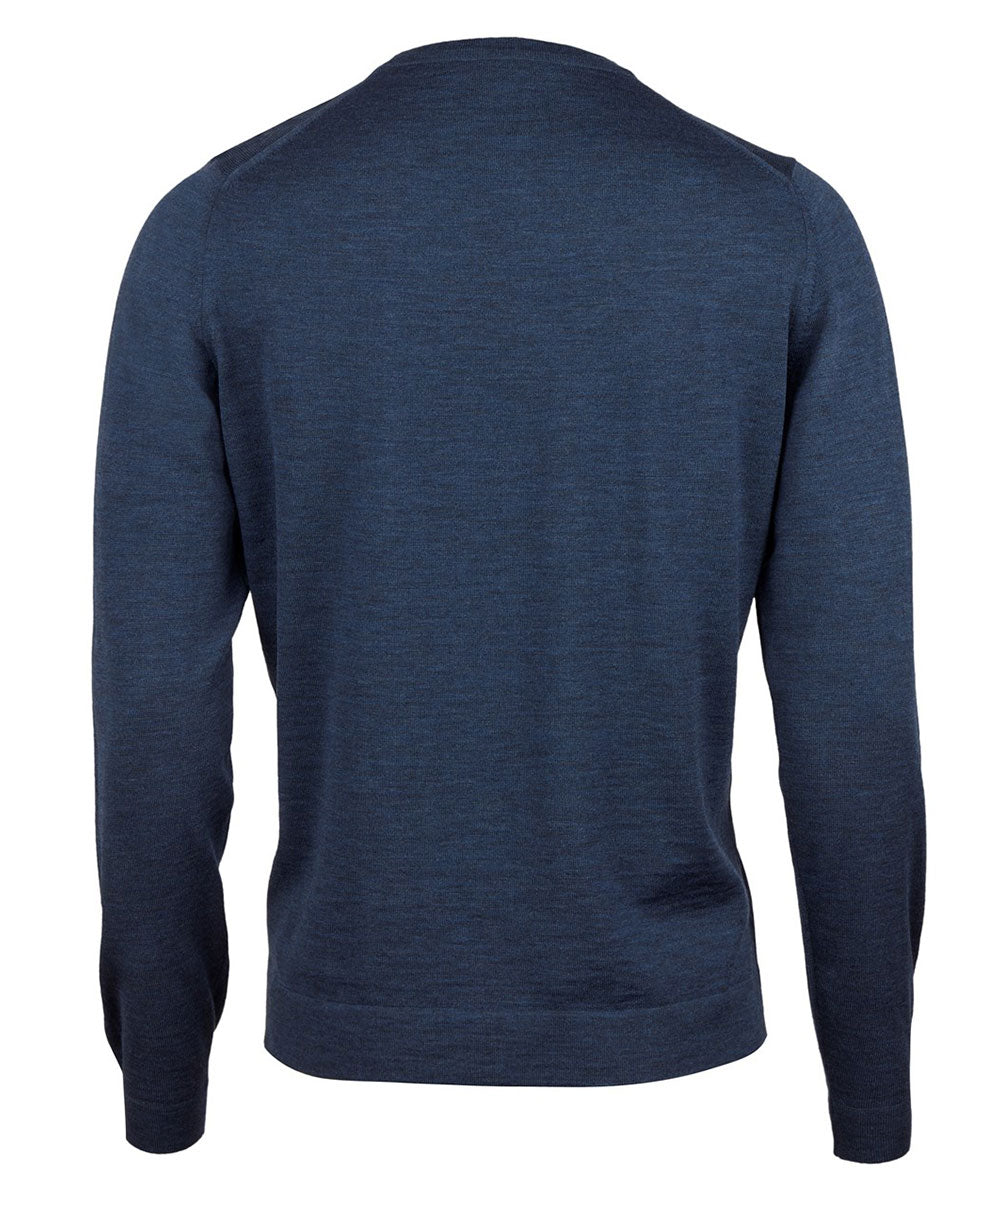 Indigo Blue Melange Crew Neck Knit Sweater